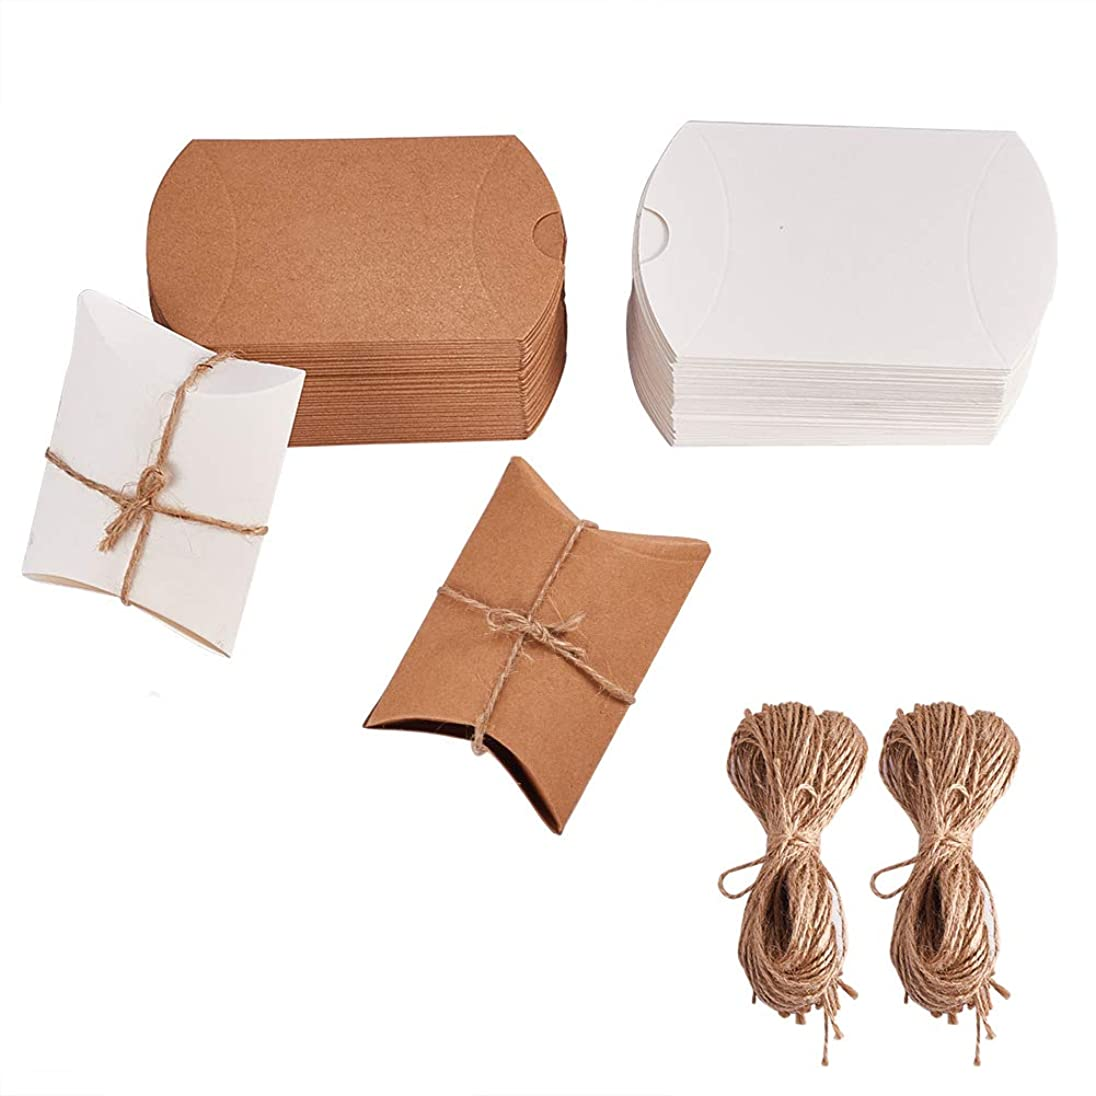 PH PandaHall 100pcs Pillow Kraft Boxes Wedding Favor Gift Box Candy Boxes with Jute Twine Baby Shower Birthday Party Supplies (0.8 x 3.4 inches, Sienna & White)